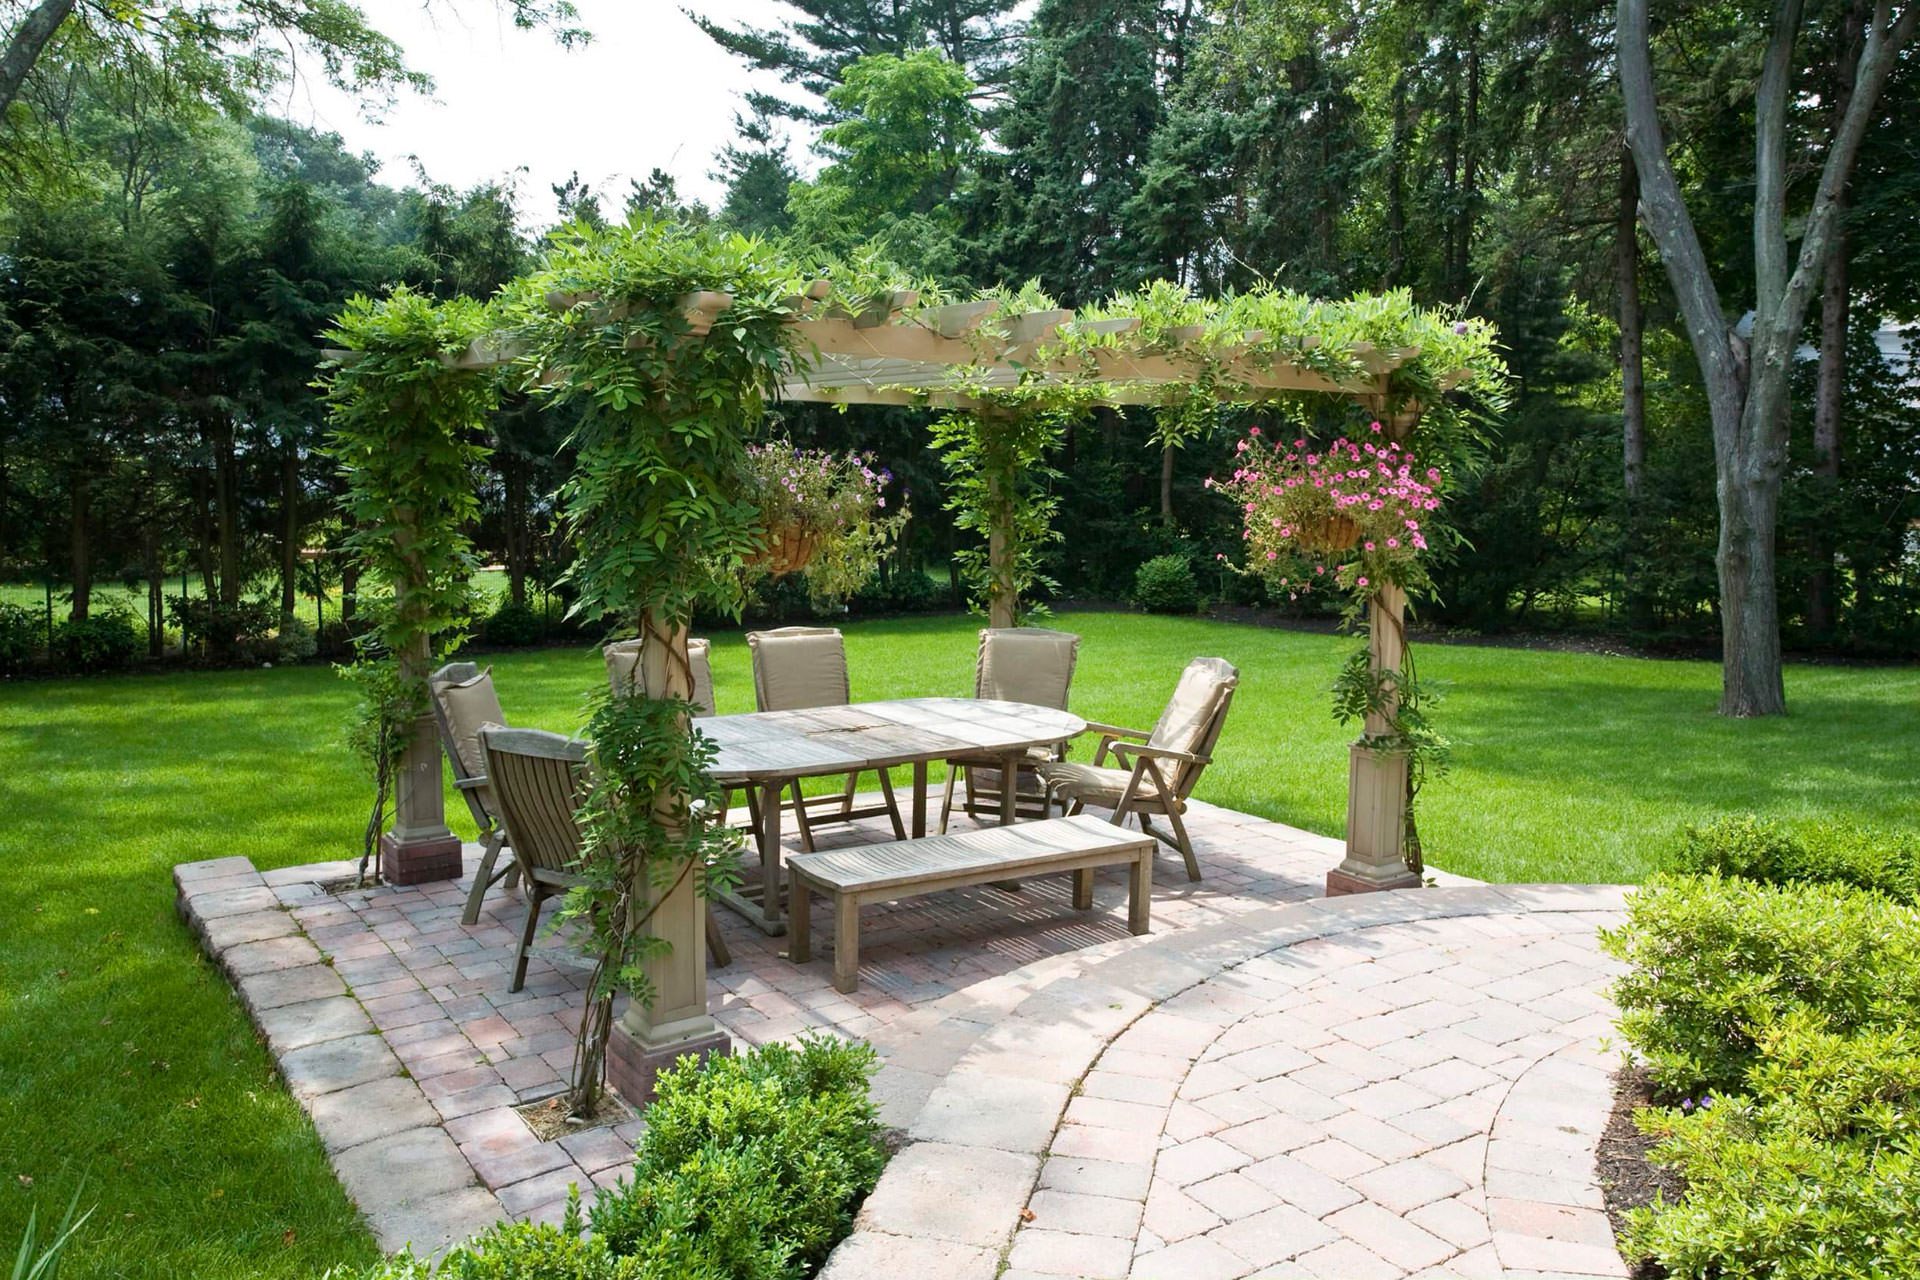 Pergola Plants Guide Shade and Enhance Your Outdoor Space